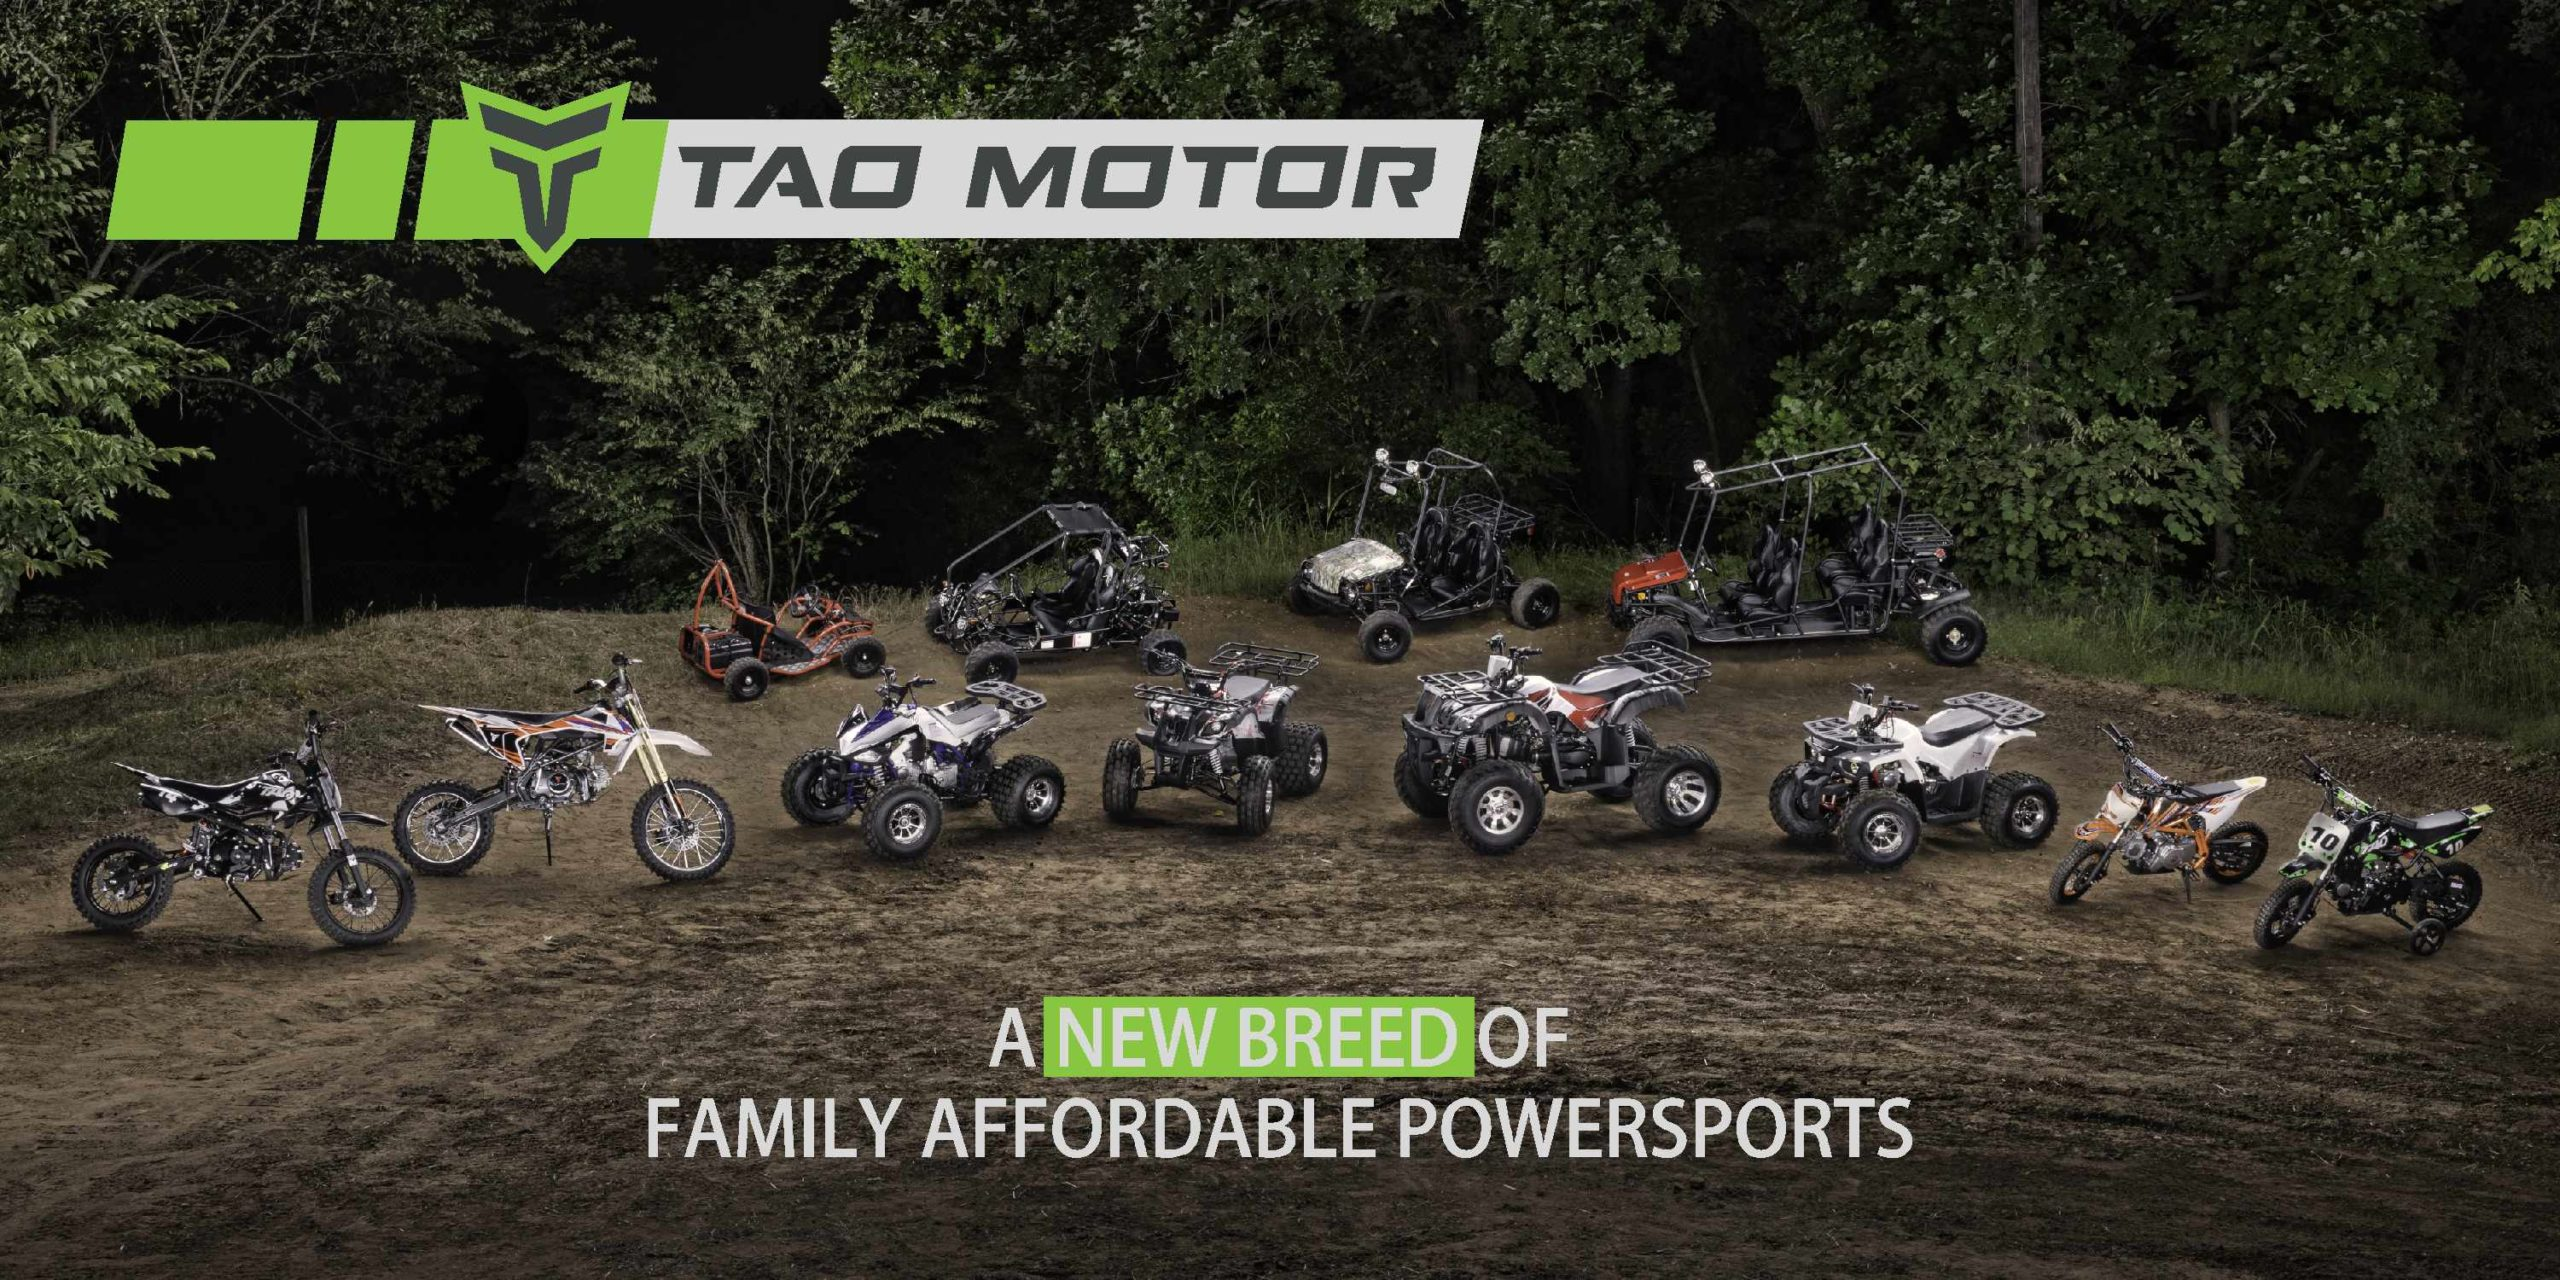 TAOMOTOR_offroad_banner_trees